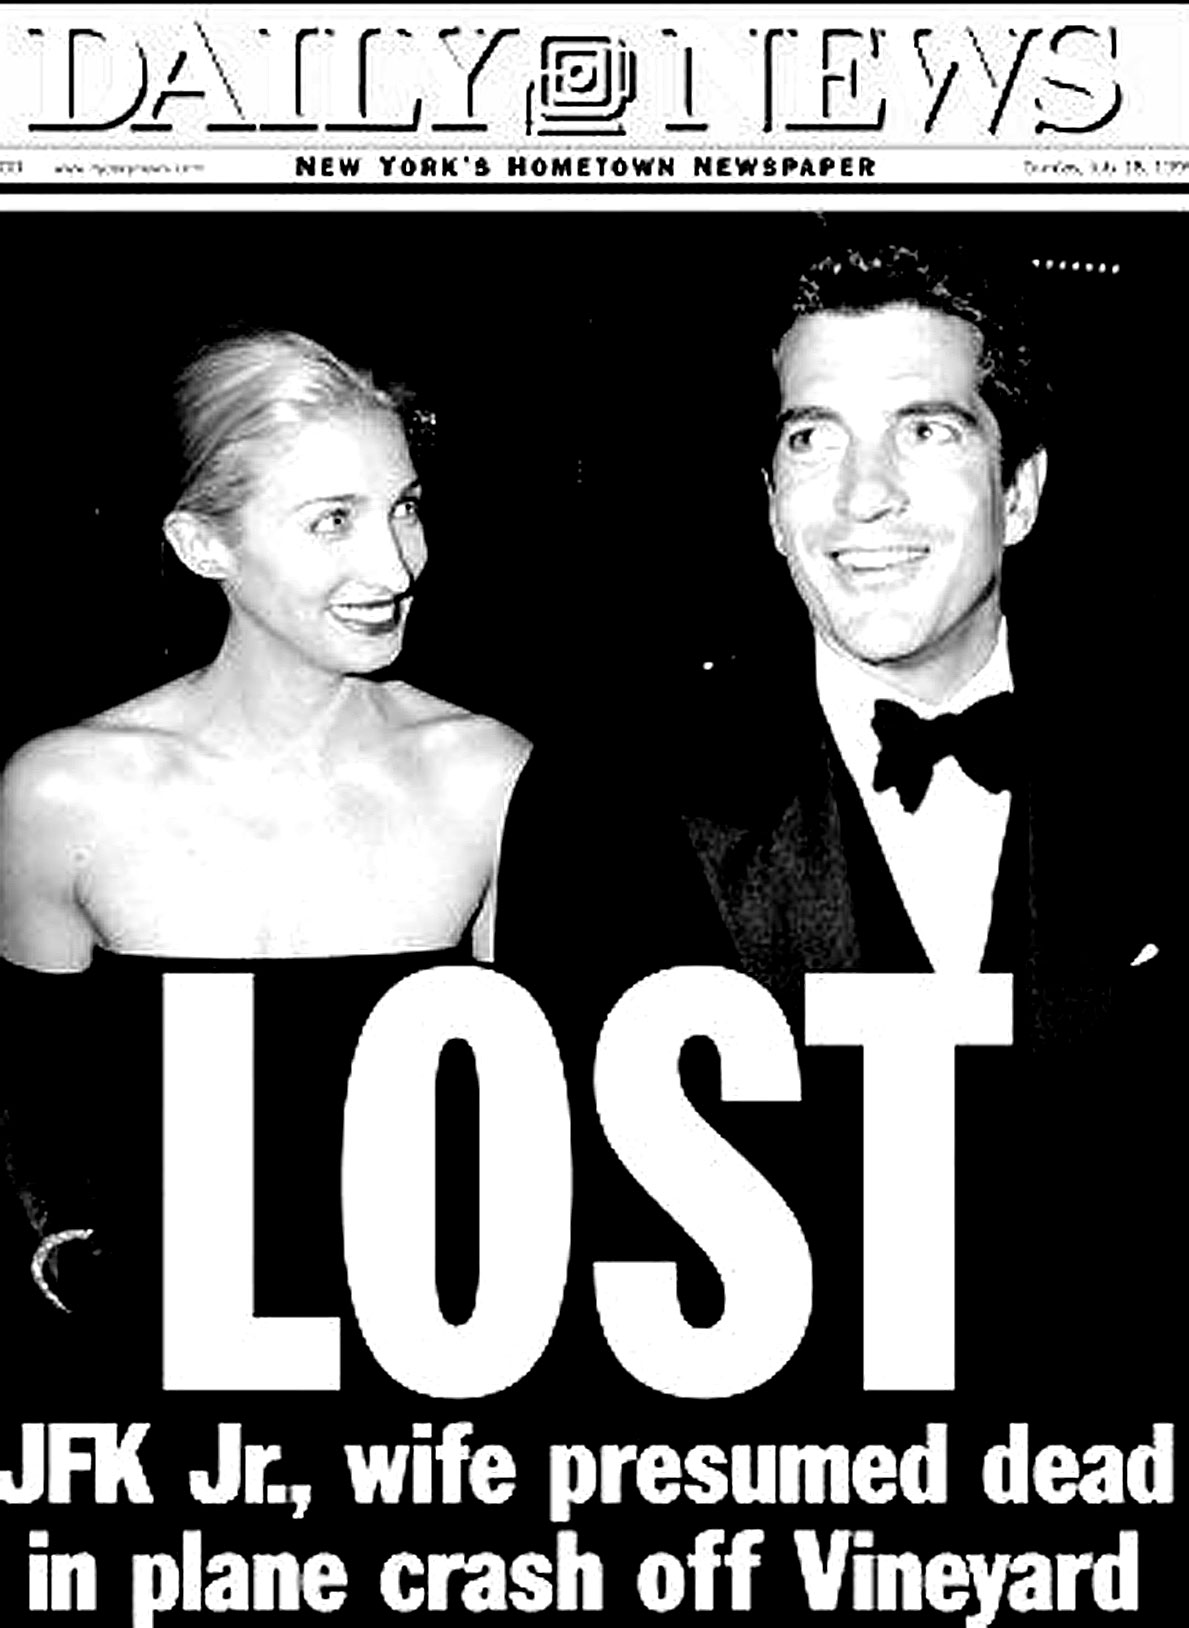 JFK Jr. and Carolyn Bessette